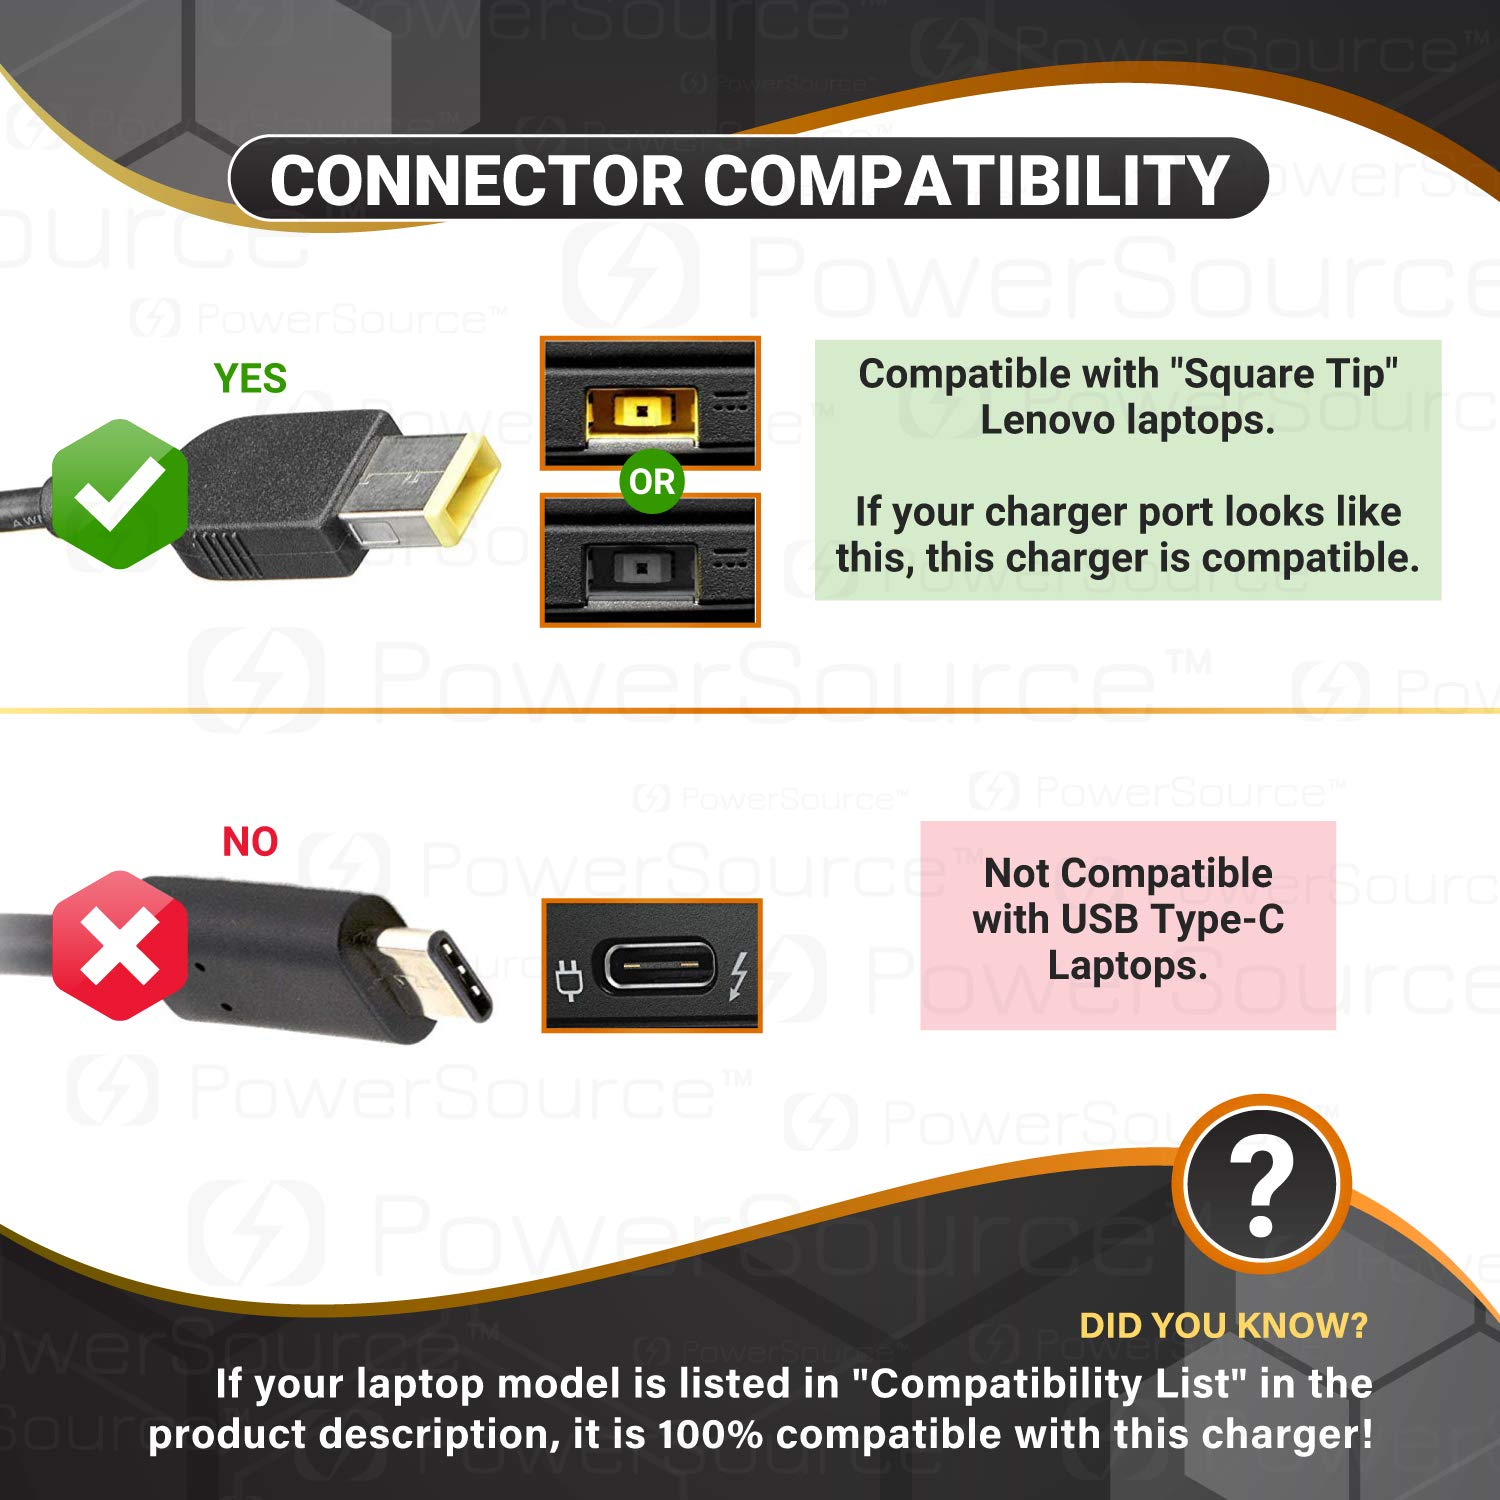 PowerSource 170W 135W 20V UL Listed Extra Long 12Ft AC-Adapter-Charger for Lenovo Y50 Y50-70 IdeaPad Y700 Legion Y520 Y530 ThinkPad T560 W541 W540 T460P T540 T440P Y70 Y70-70 Laptop Power-Supply Cord by PowerSource (Image #2)